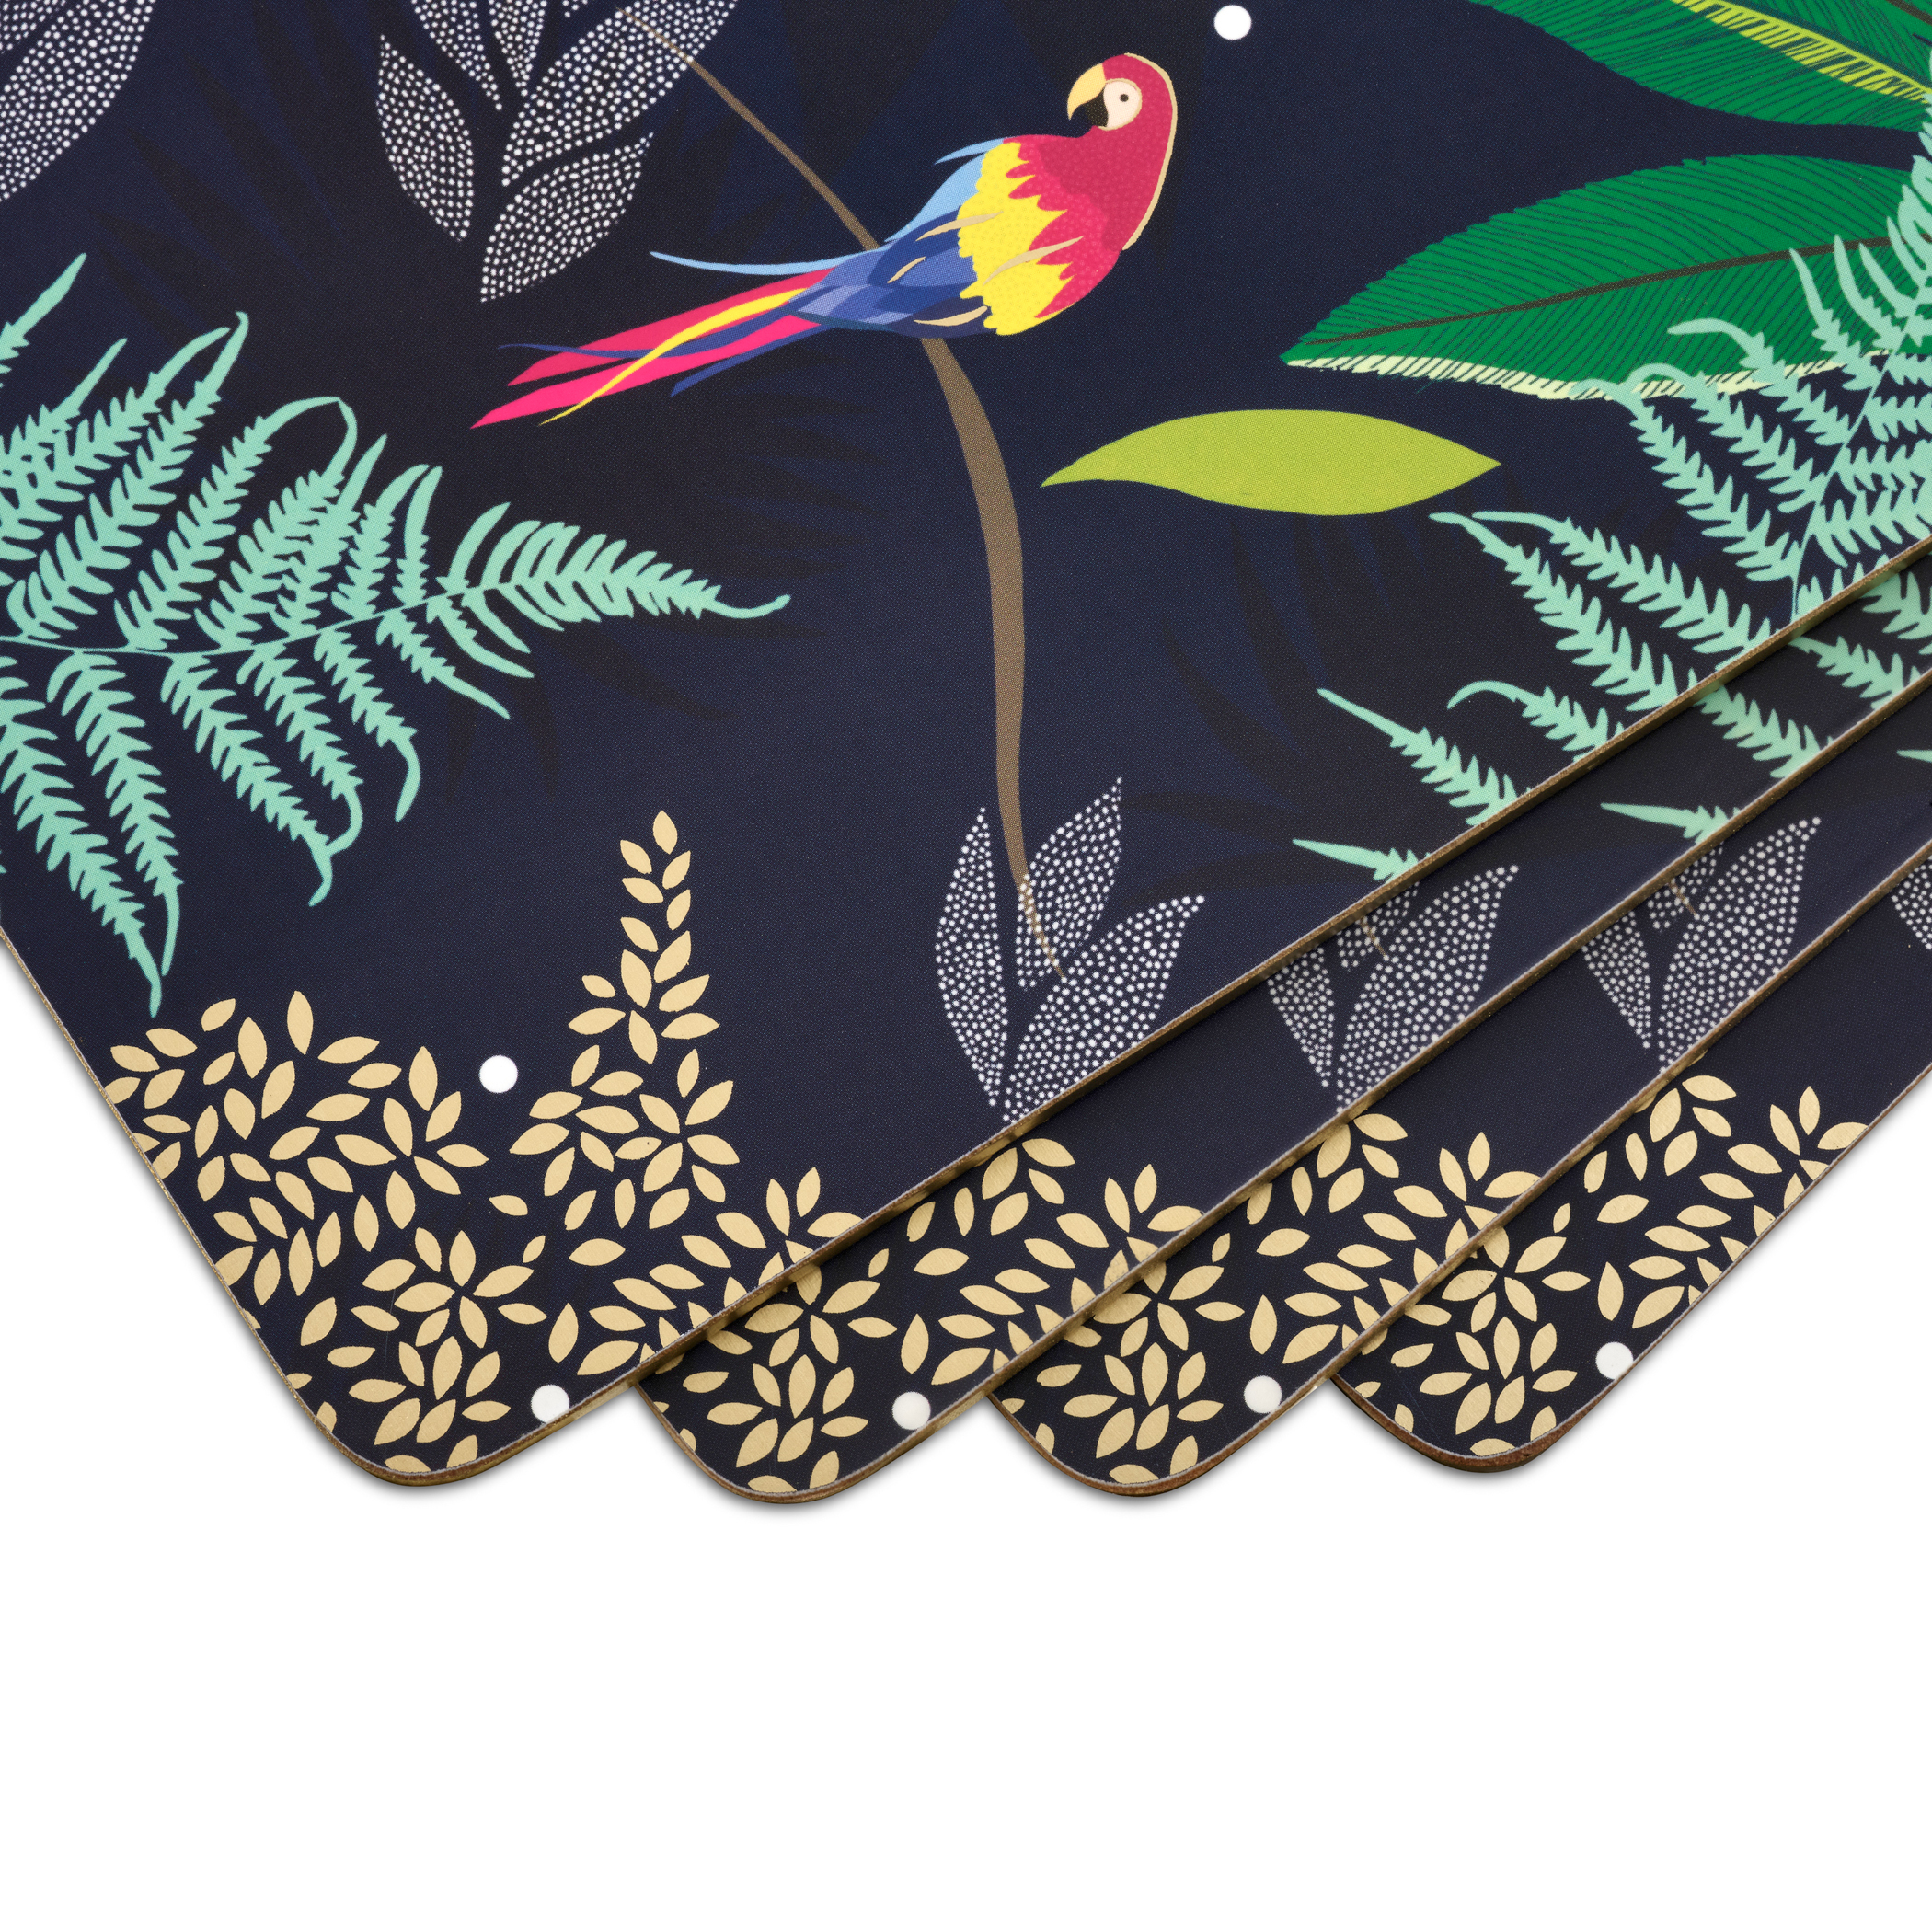 Sara Miller London for Pimpernel Parrot Collection Placemats Set of 4 image number 1